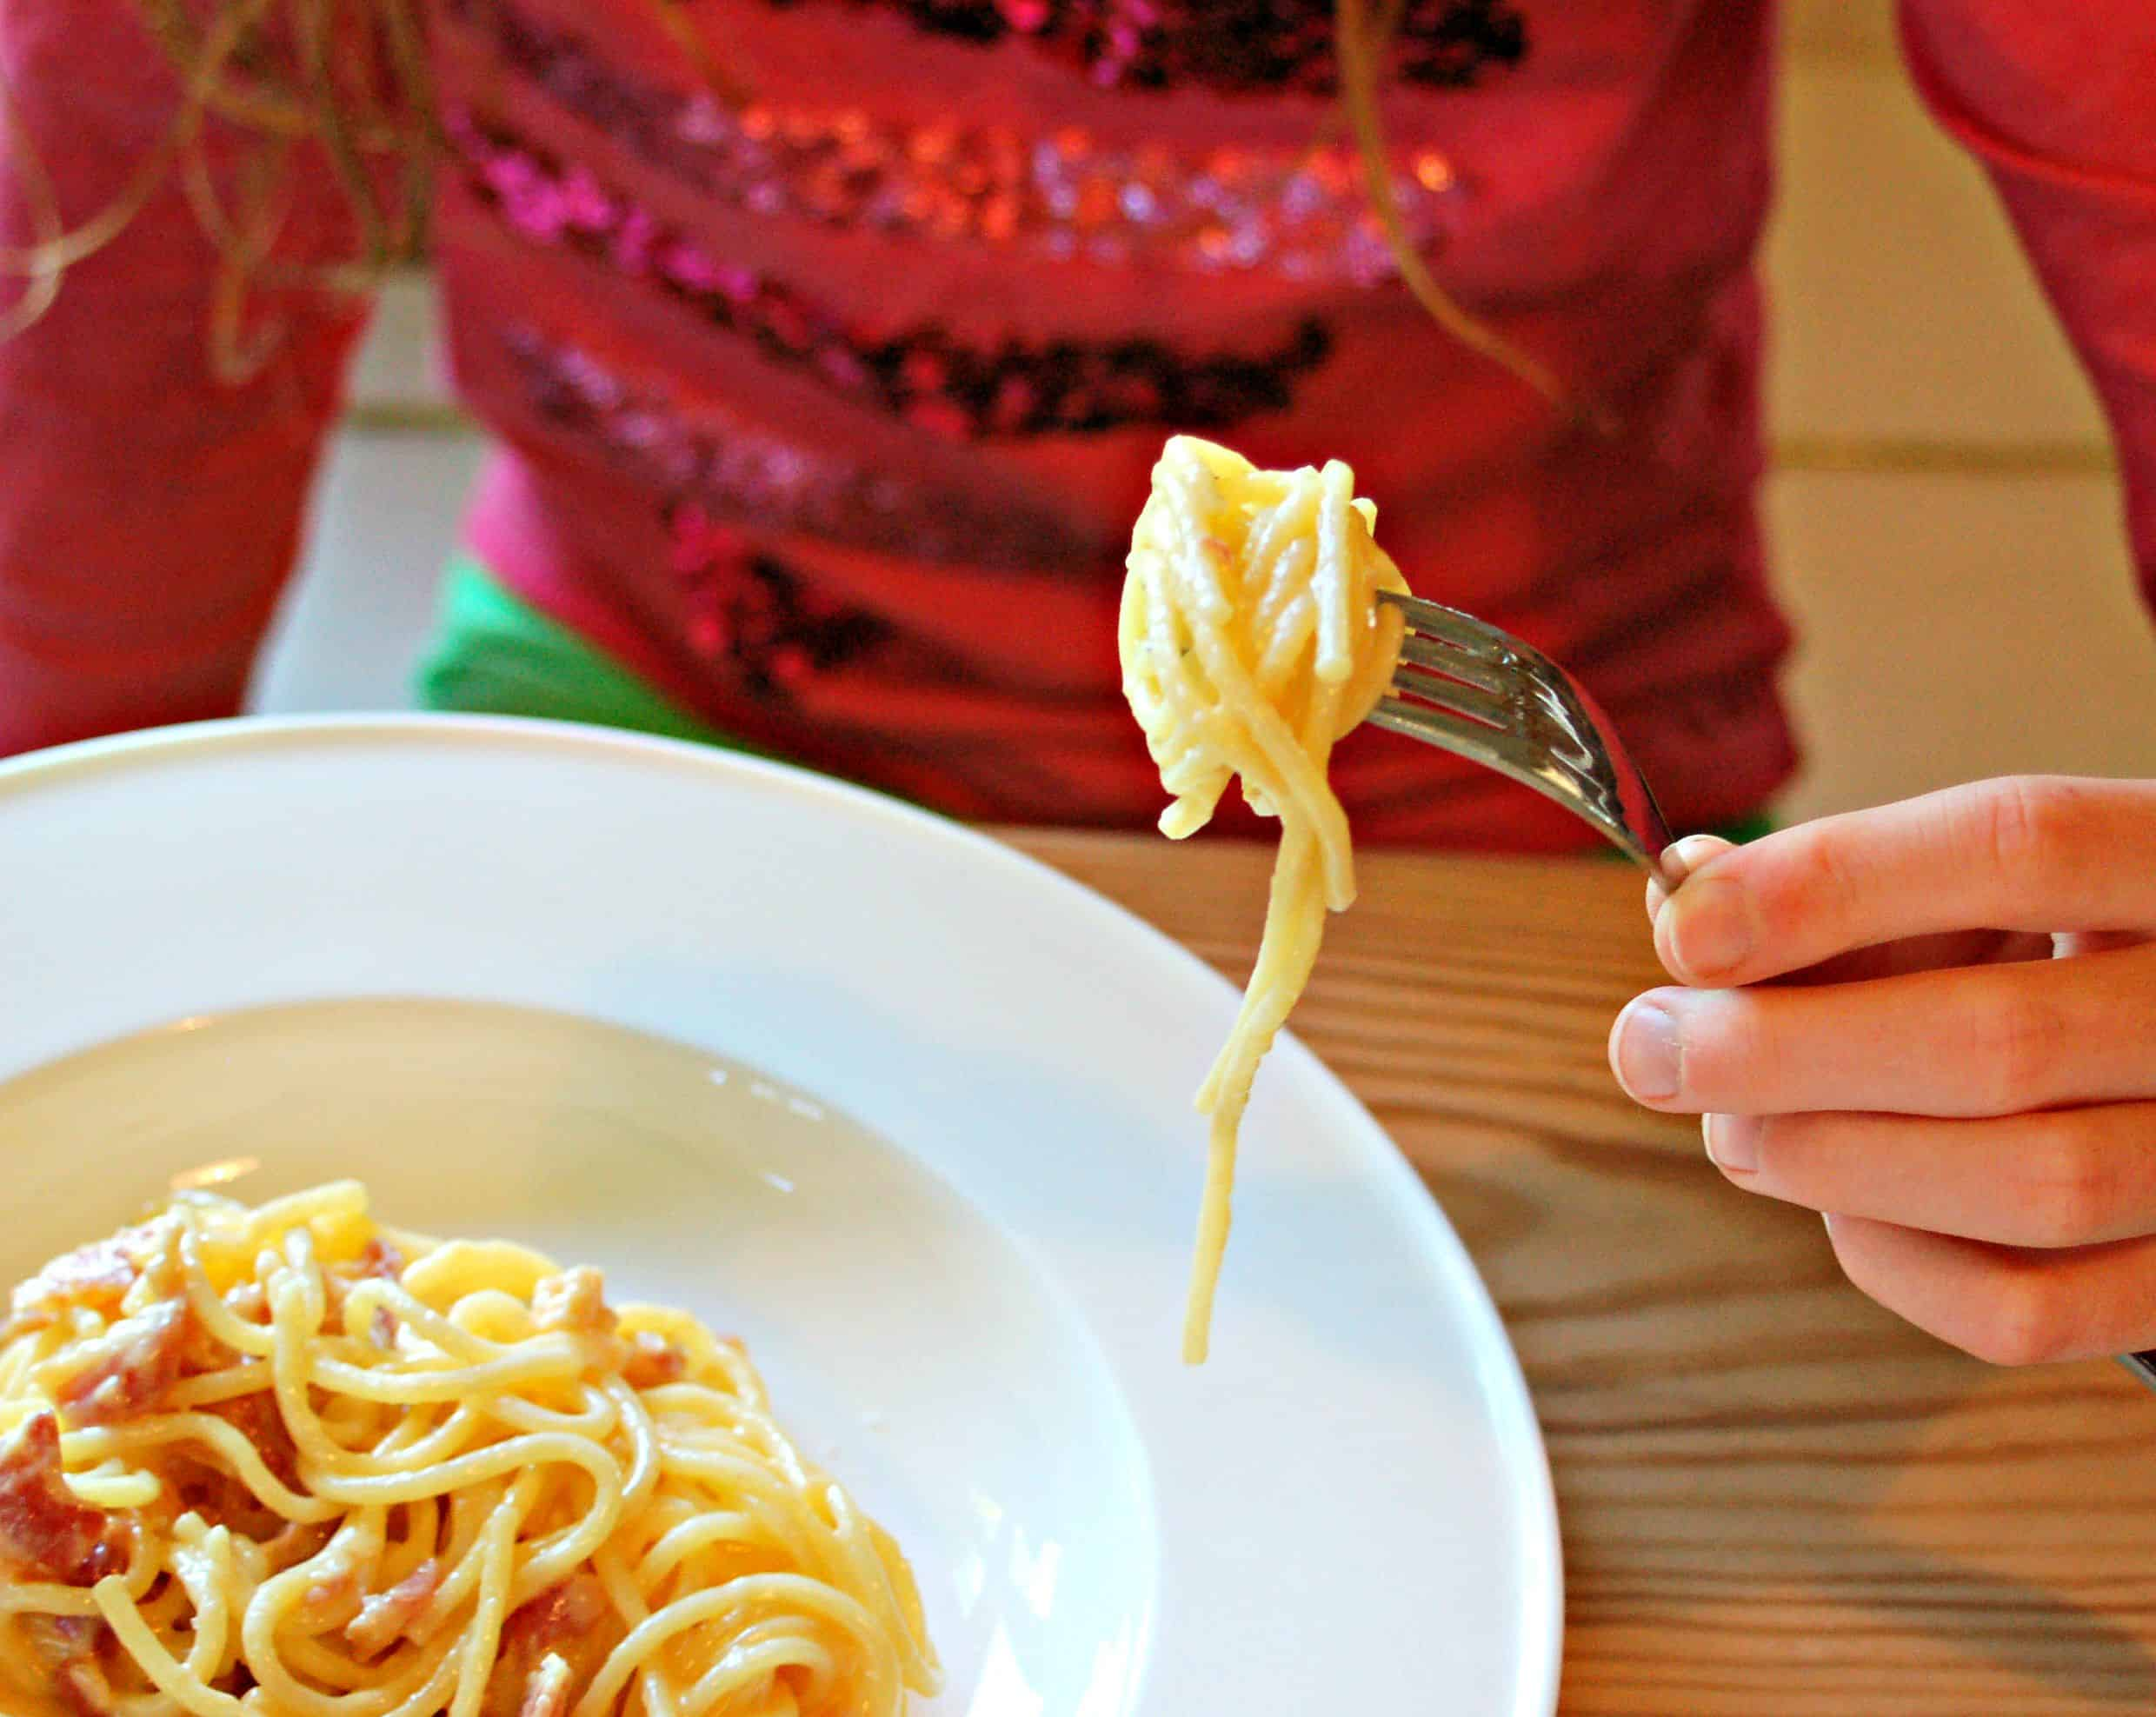 'Everyone loves it Spaghetti', or our egg and bacon spaghetti recipe is the one meal that every visiting child has eaten without complaint.